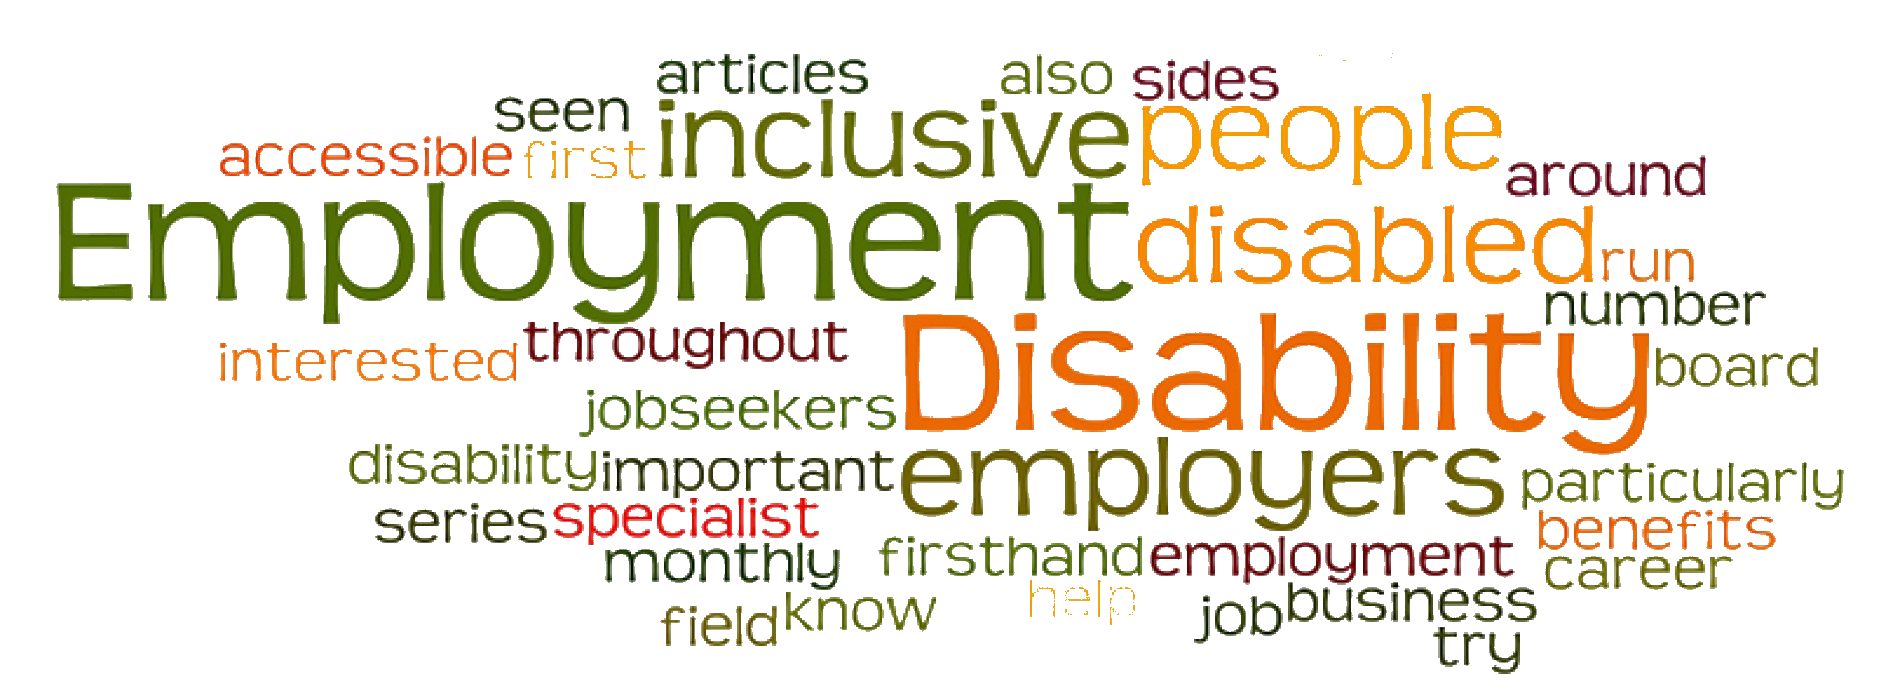 Employment Resources For People With Epilepsy